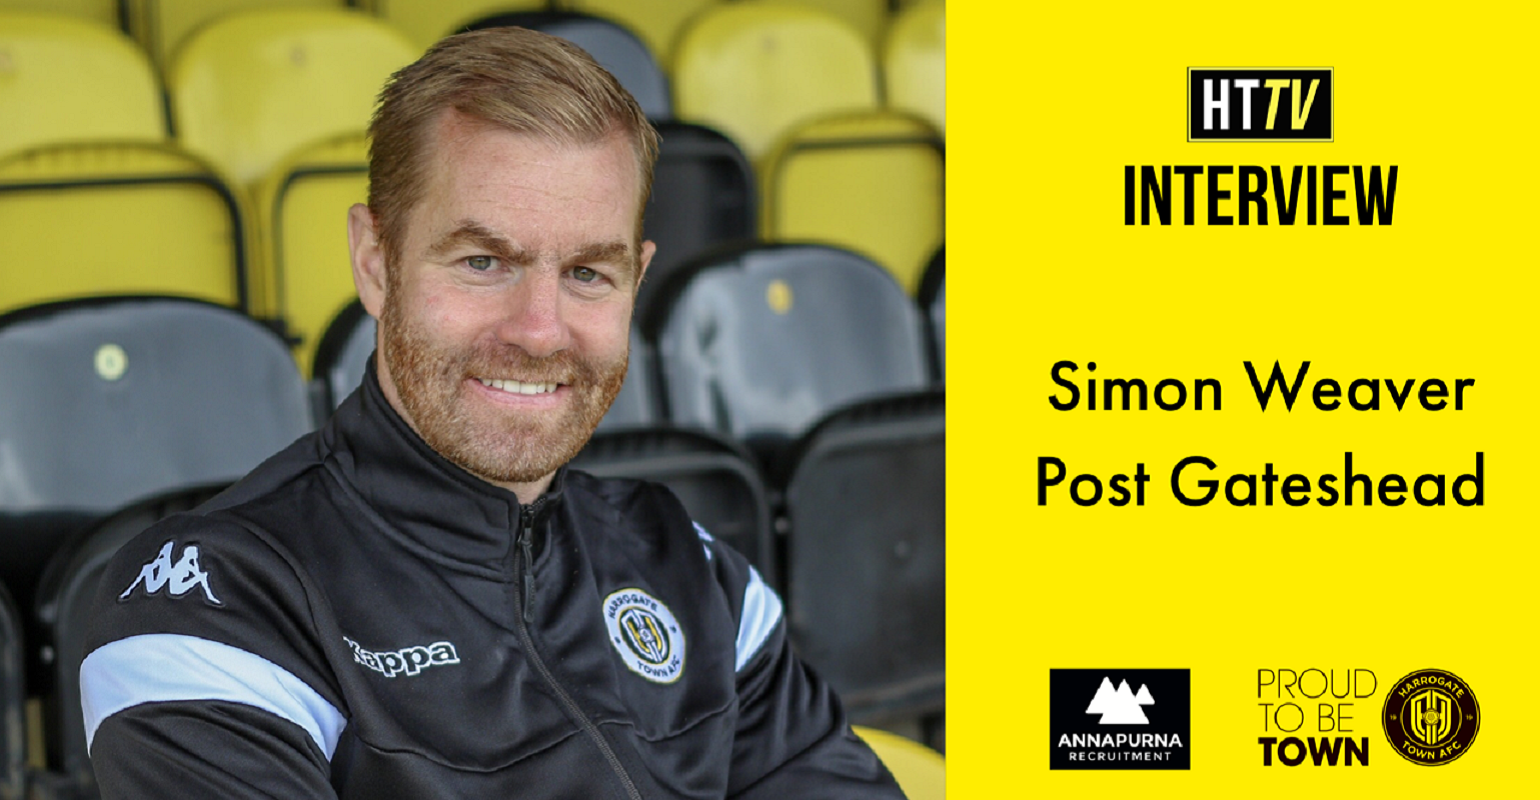 HTTV | Simon Weaver Post Gateshead